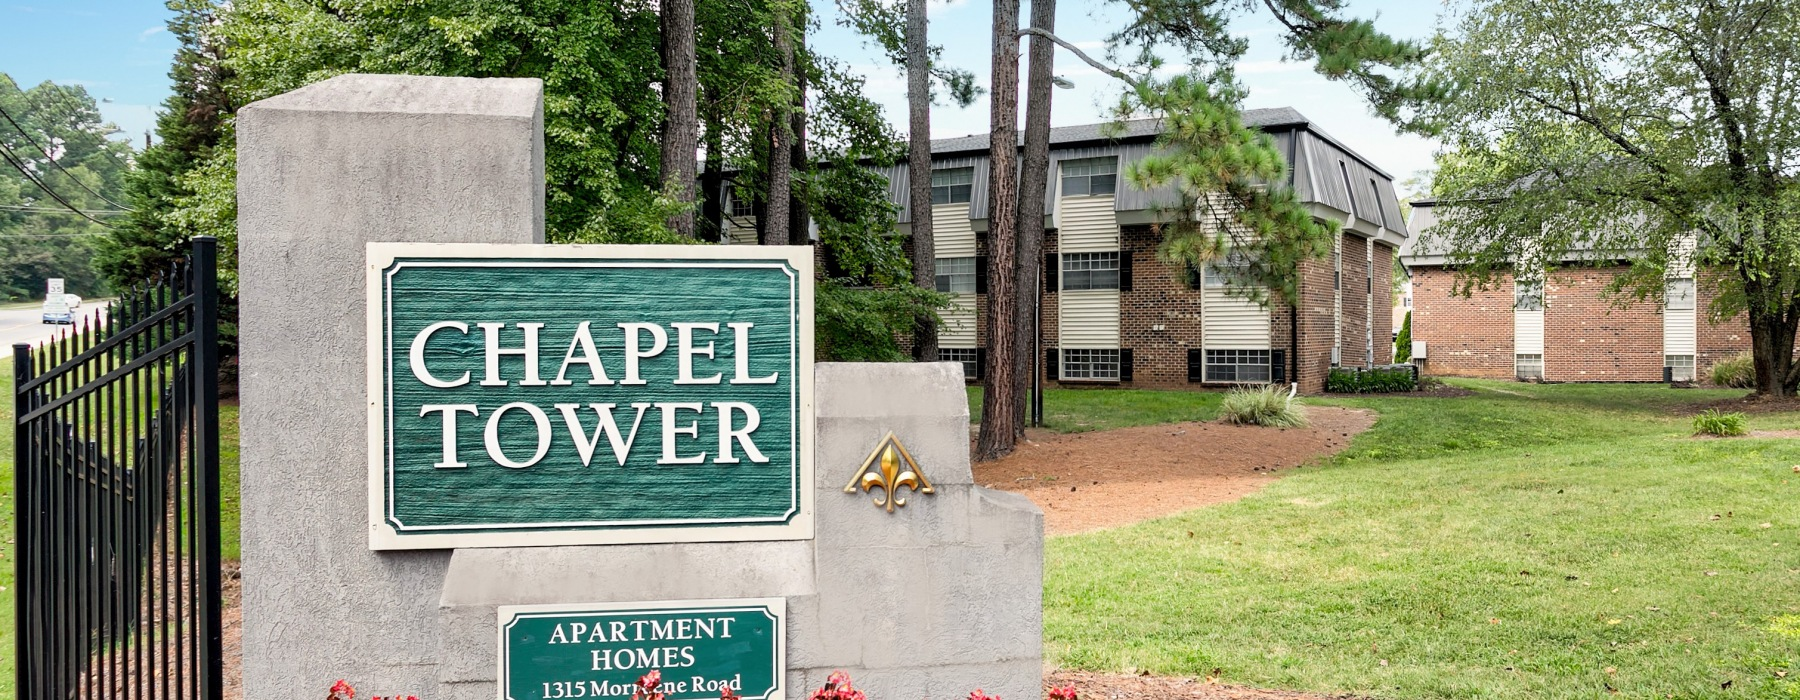 Chapel Tower Entrance Sign